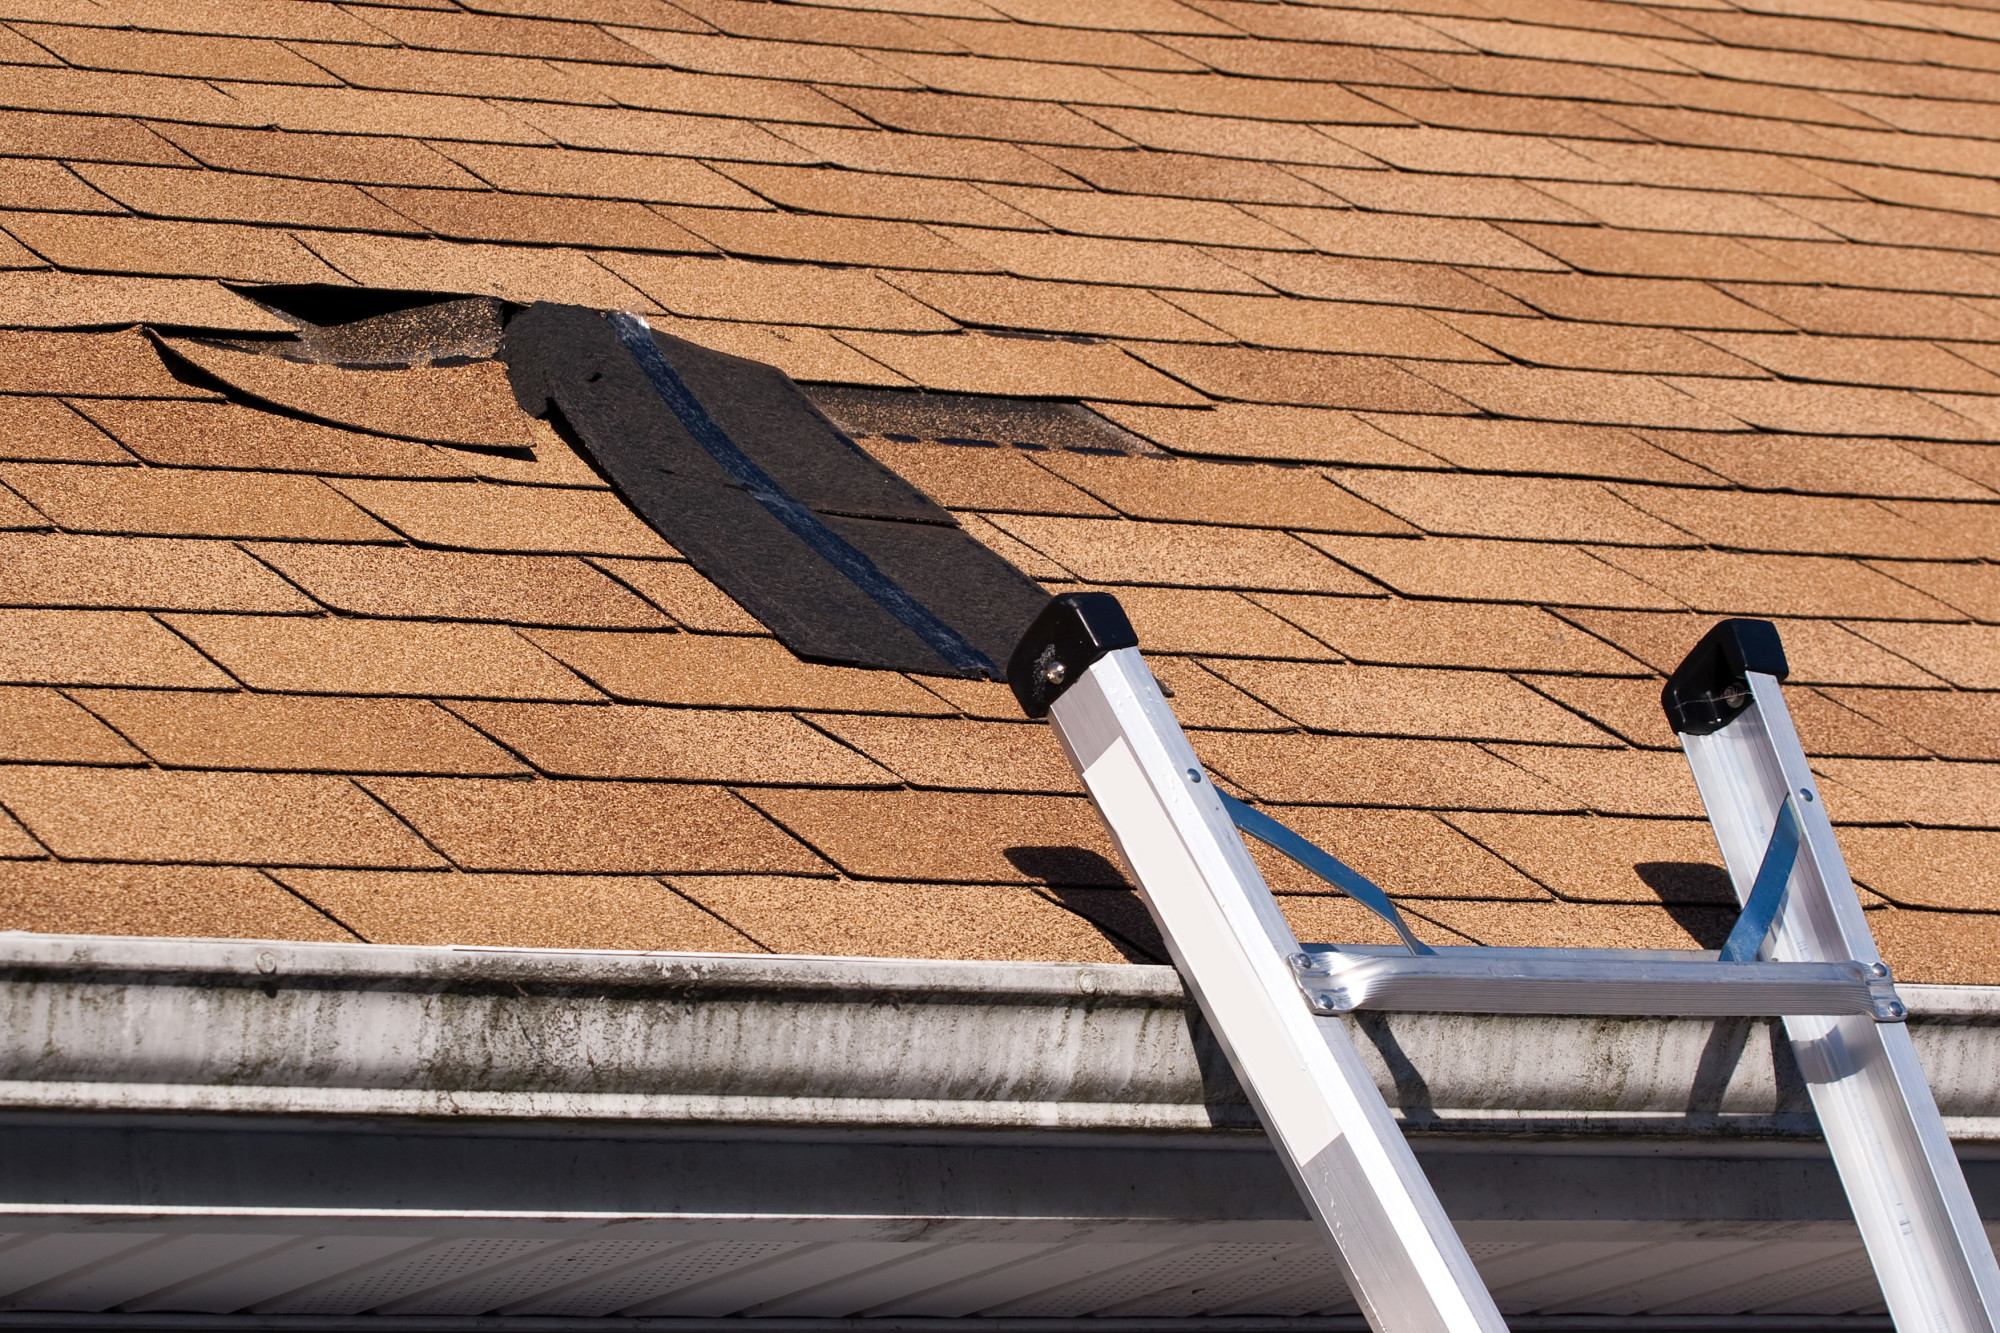 Does your roof look old and outdated? If yes, you may need to get a new roof for your home. Here are the signs you need a new roof.